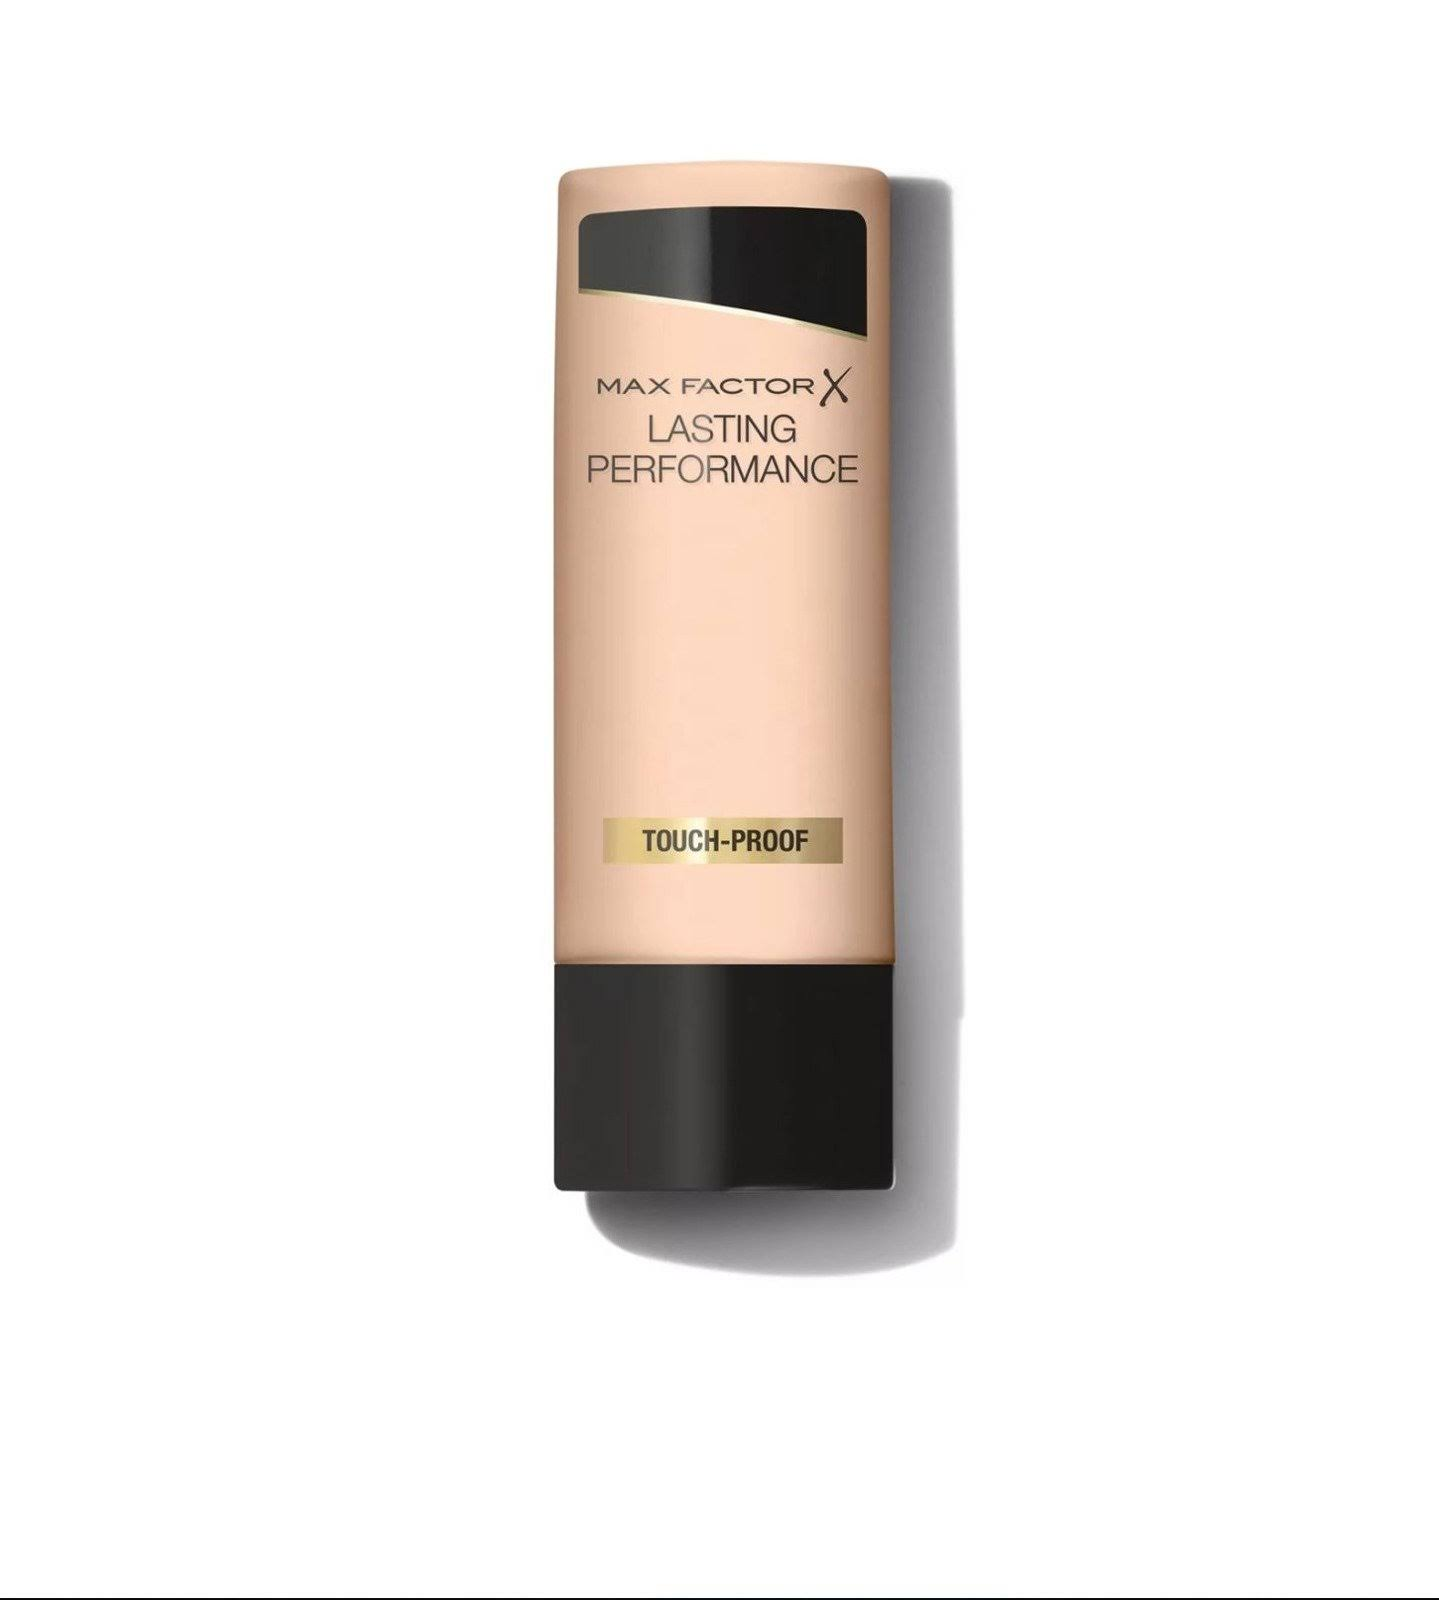 Max Factor Lasting Performance Foundation - 100 Fair, 35ml